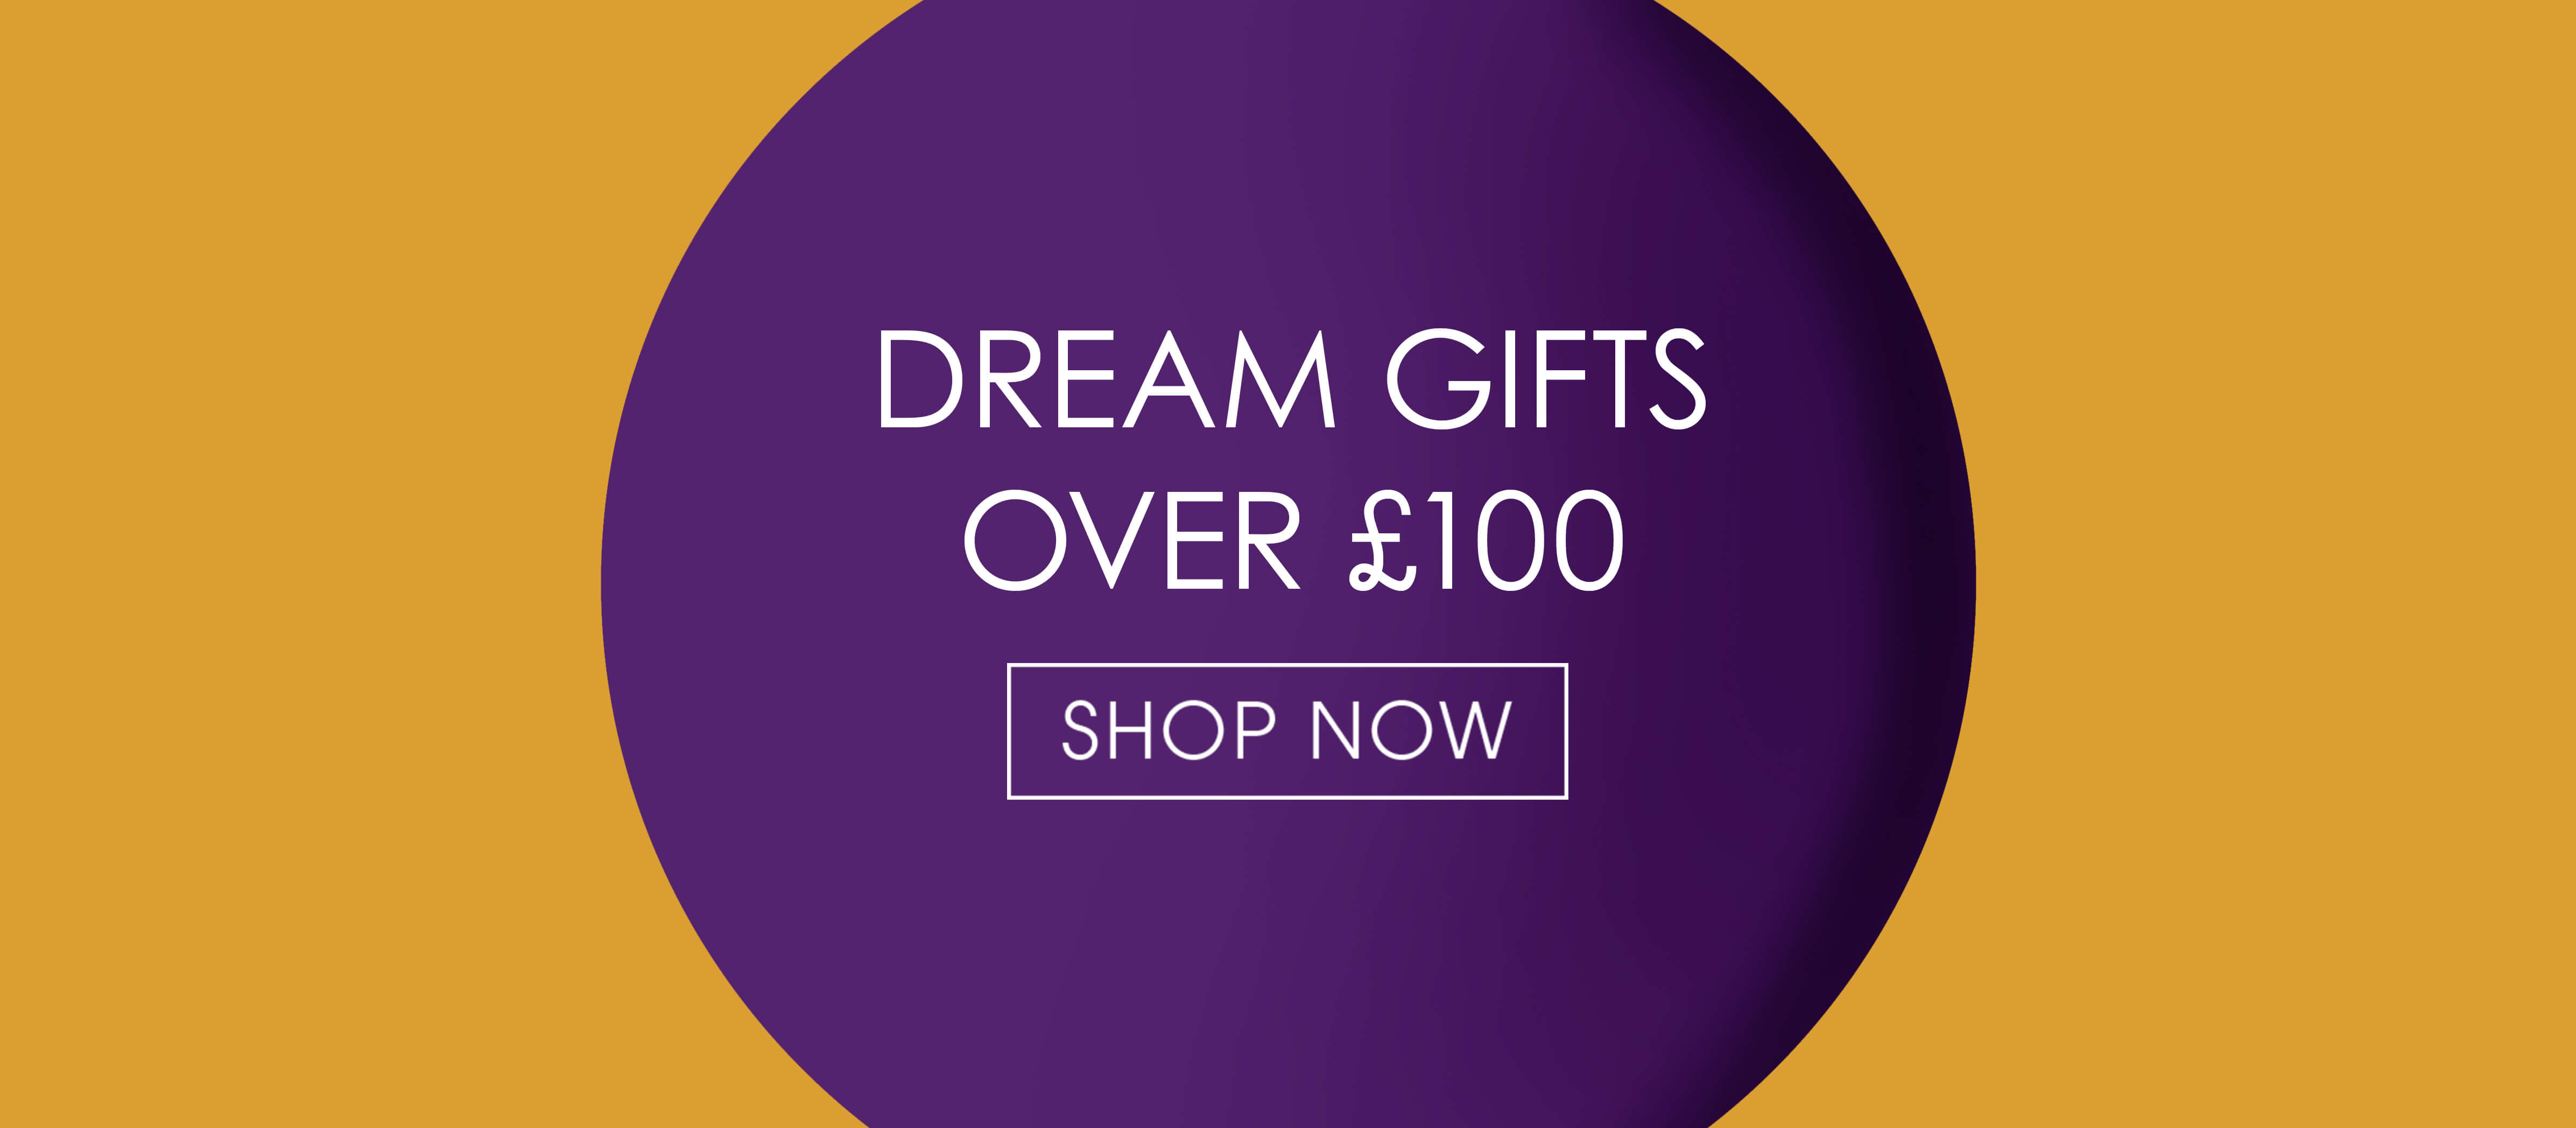 Dream Gifts Over £100